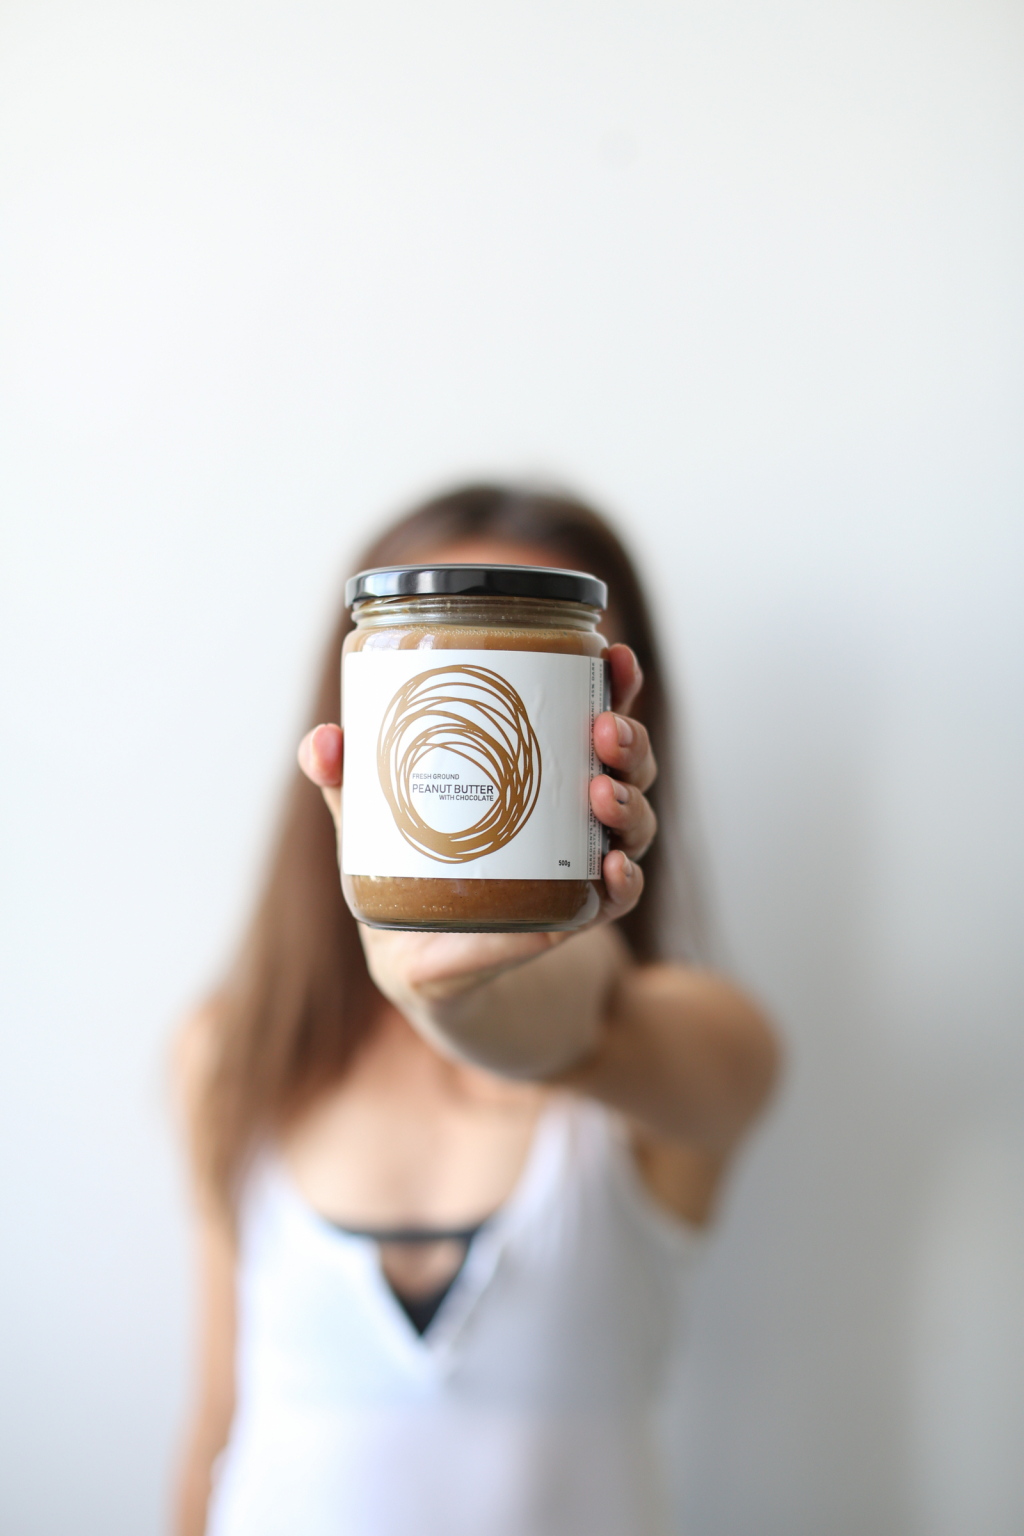 Thumbnail of: Chocolate Peanut Butter 250g - incl. Shipping